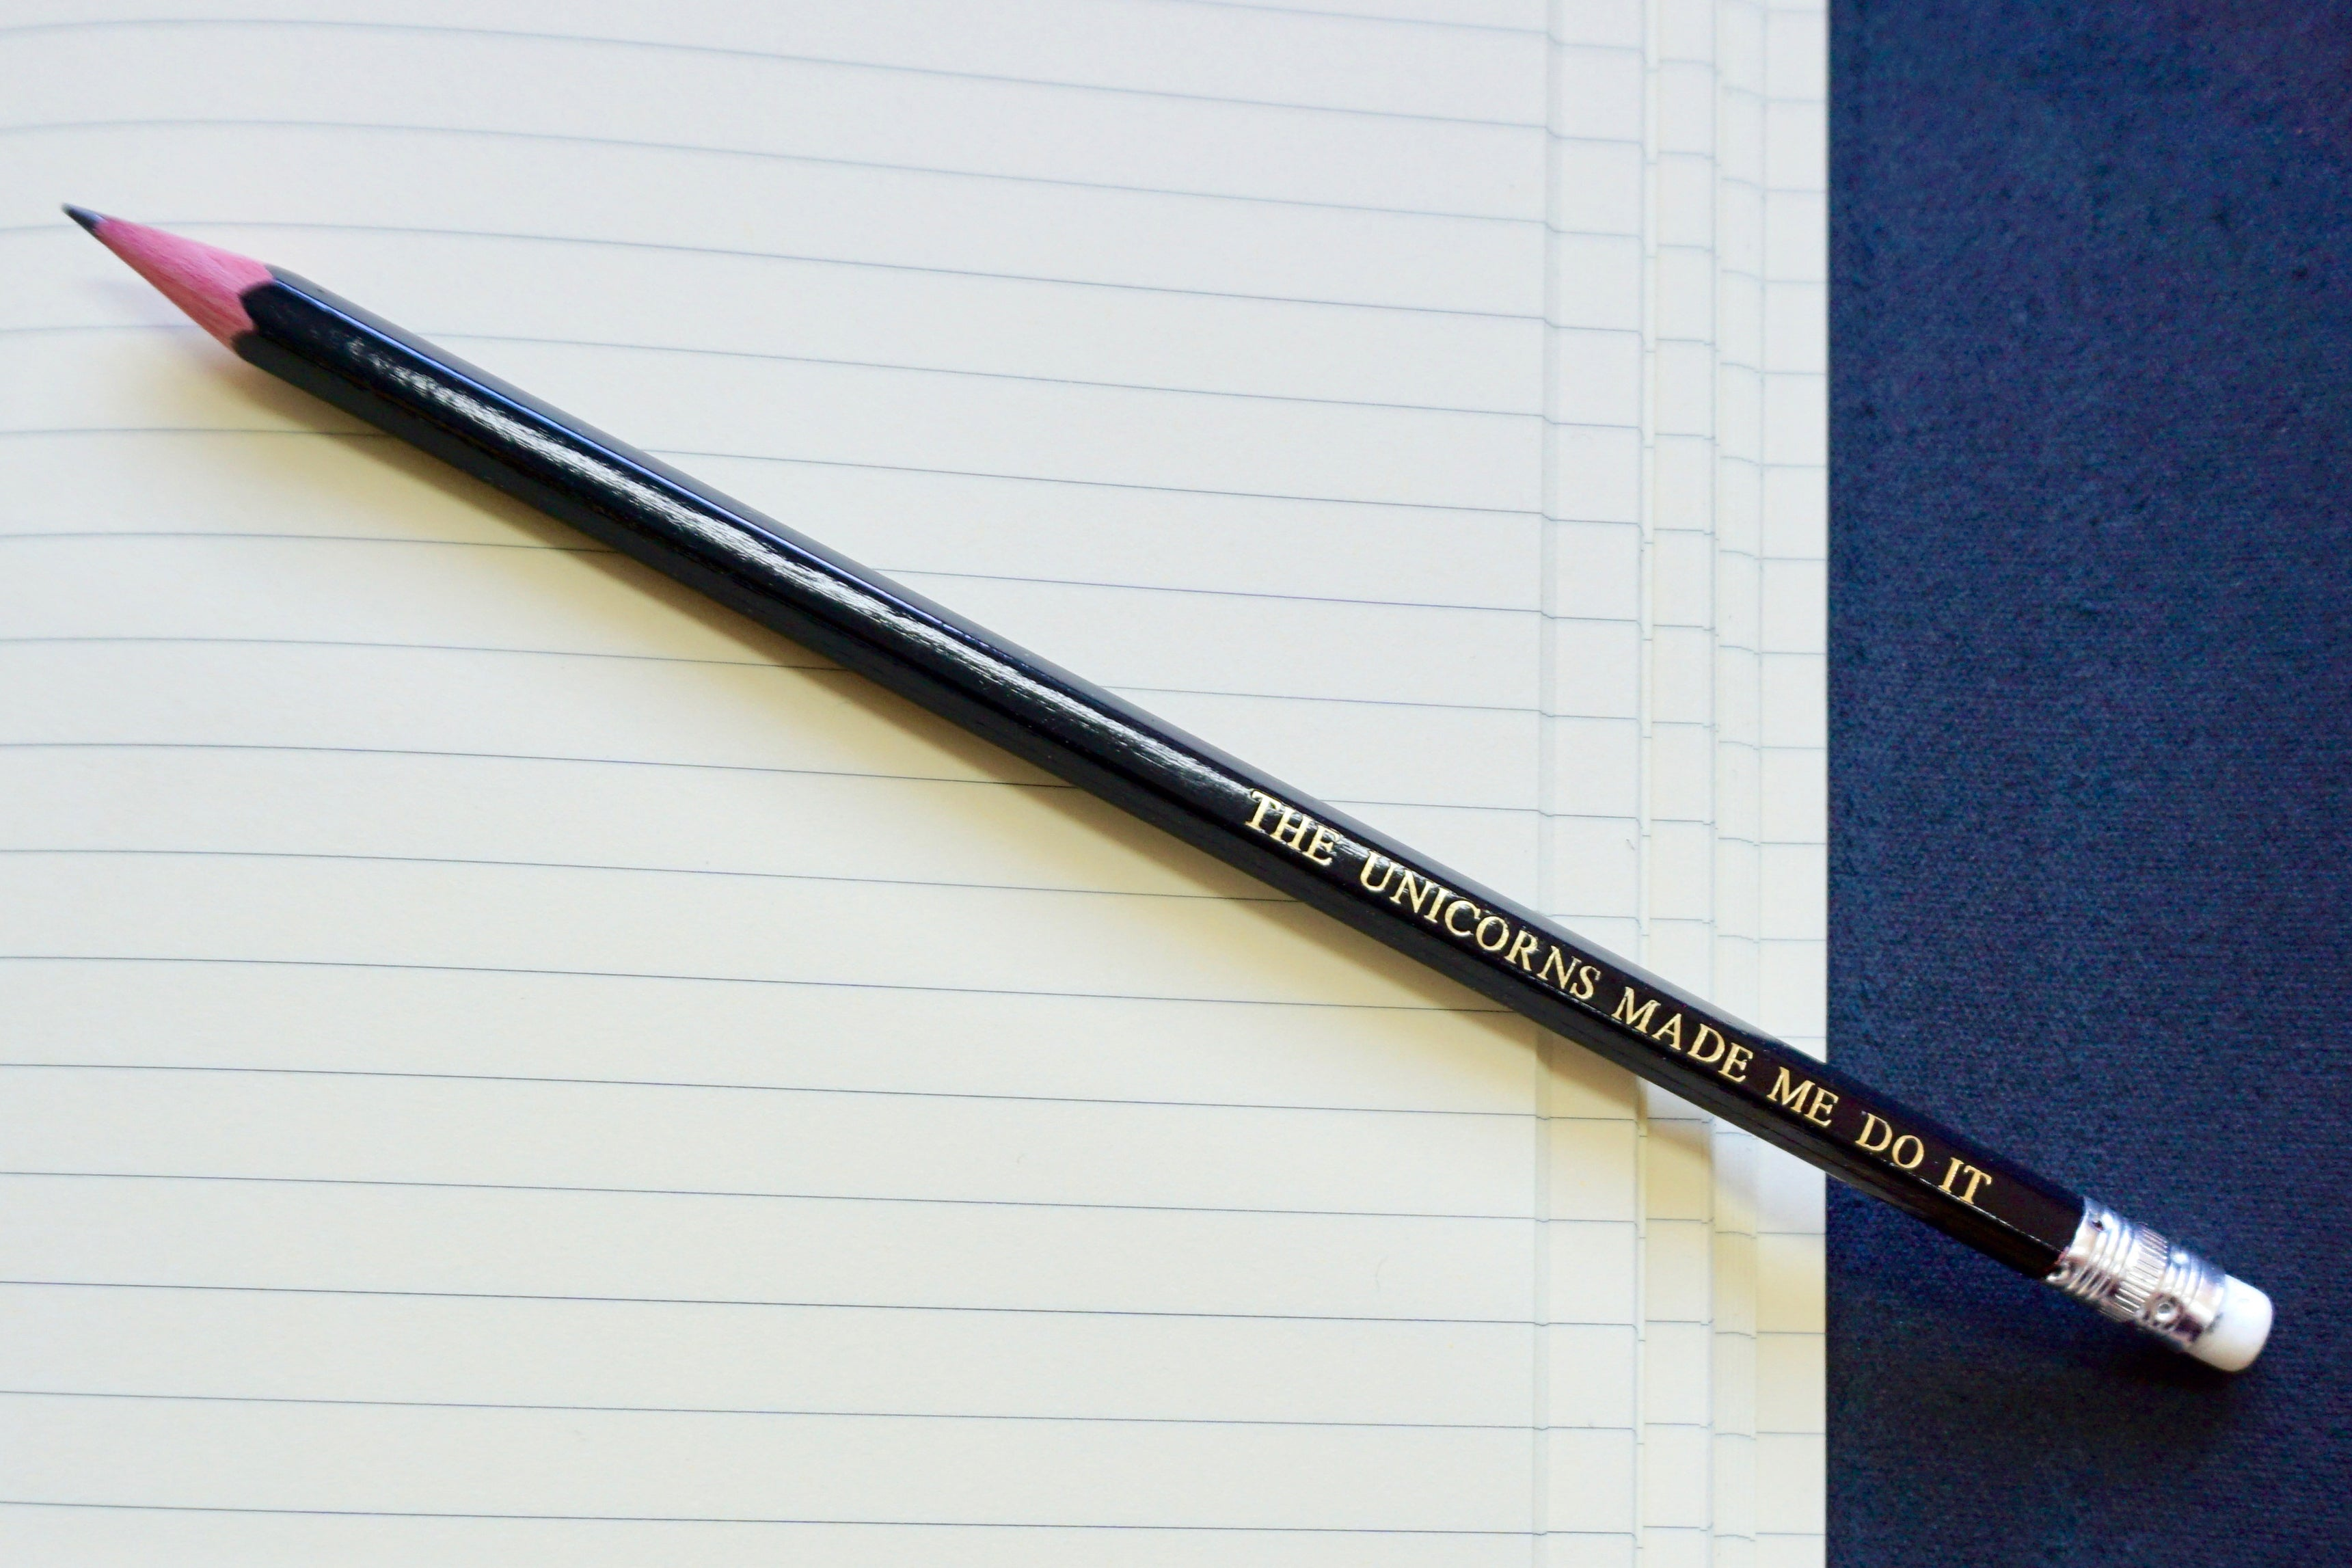 Customized pencils from Bookshell